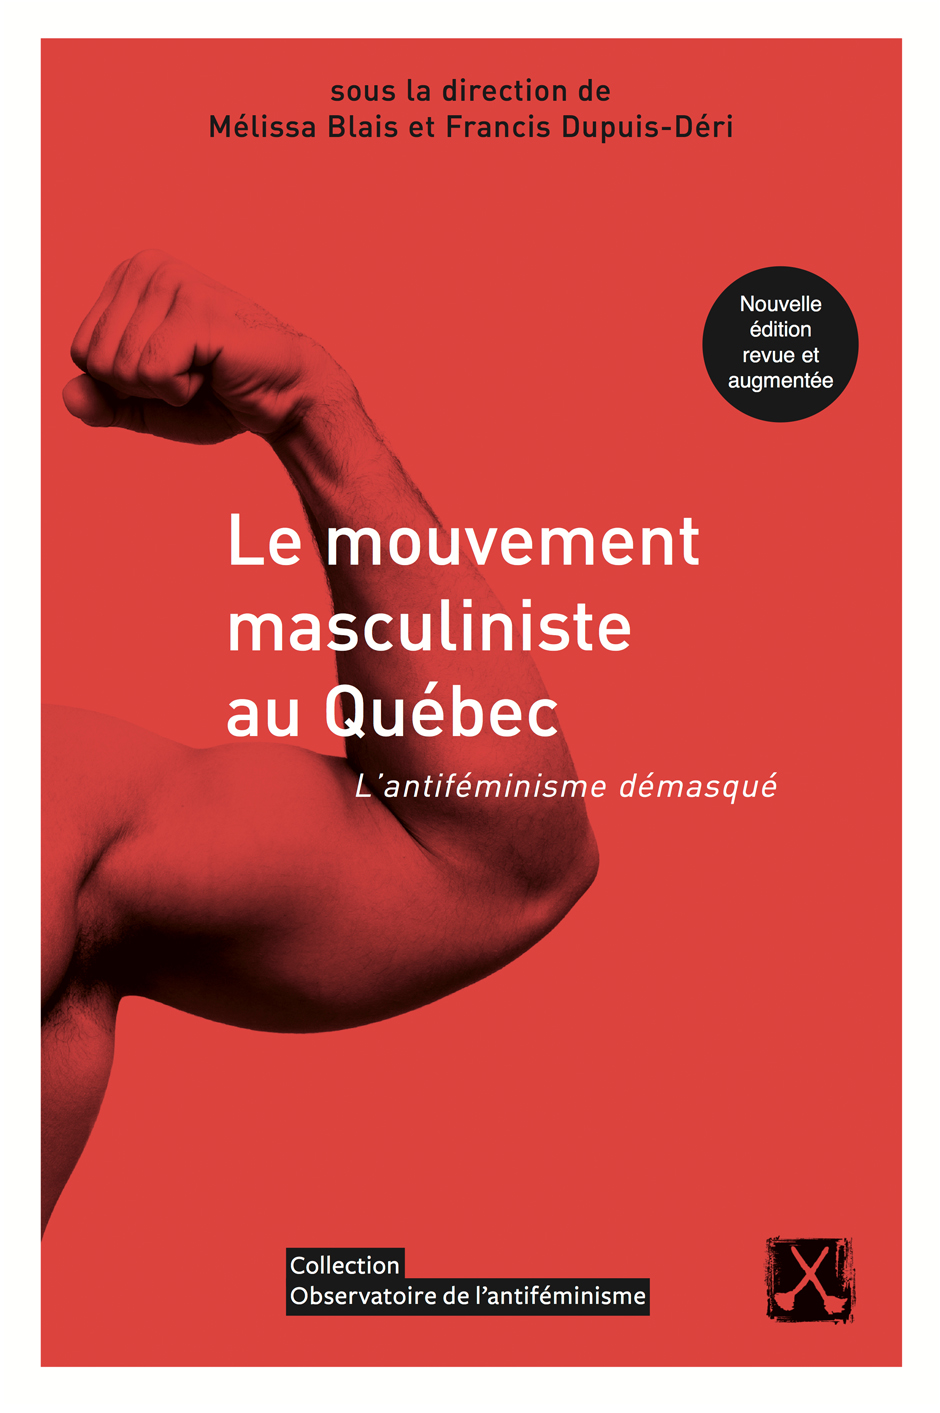 Mouvement masculiniste